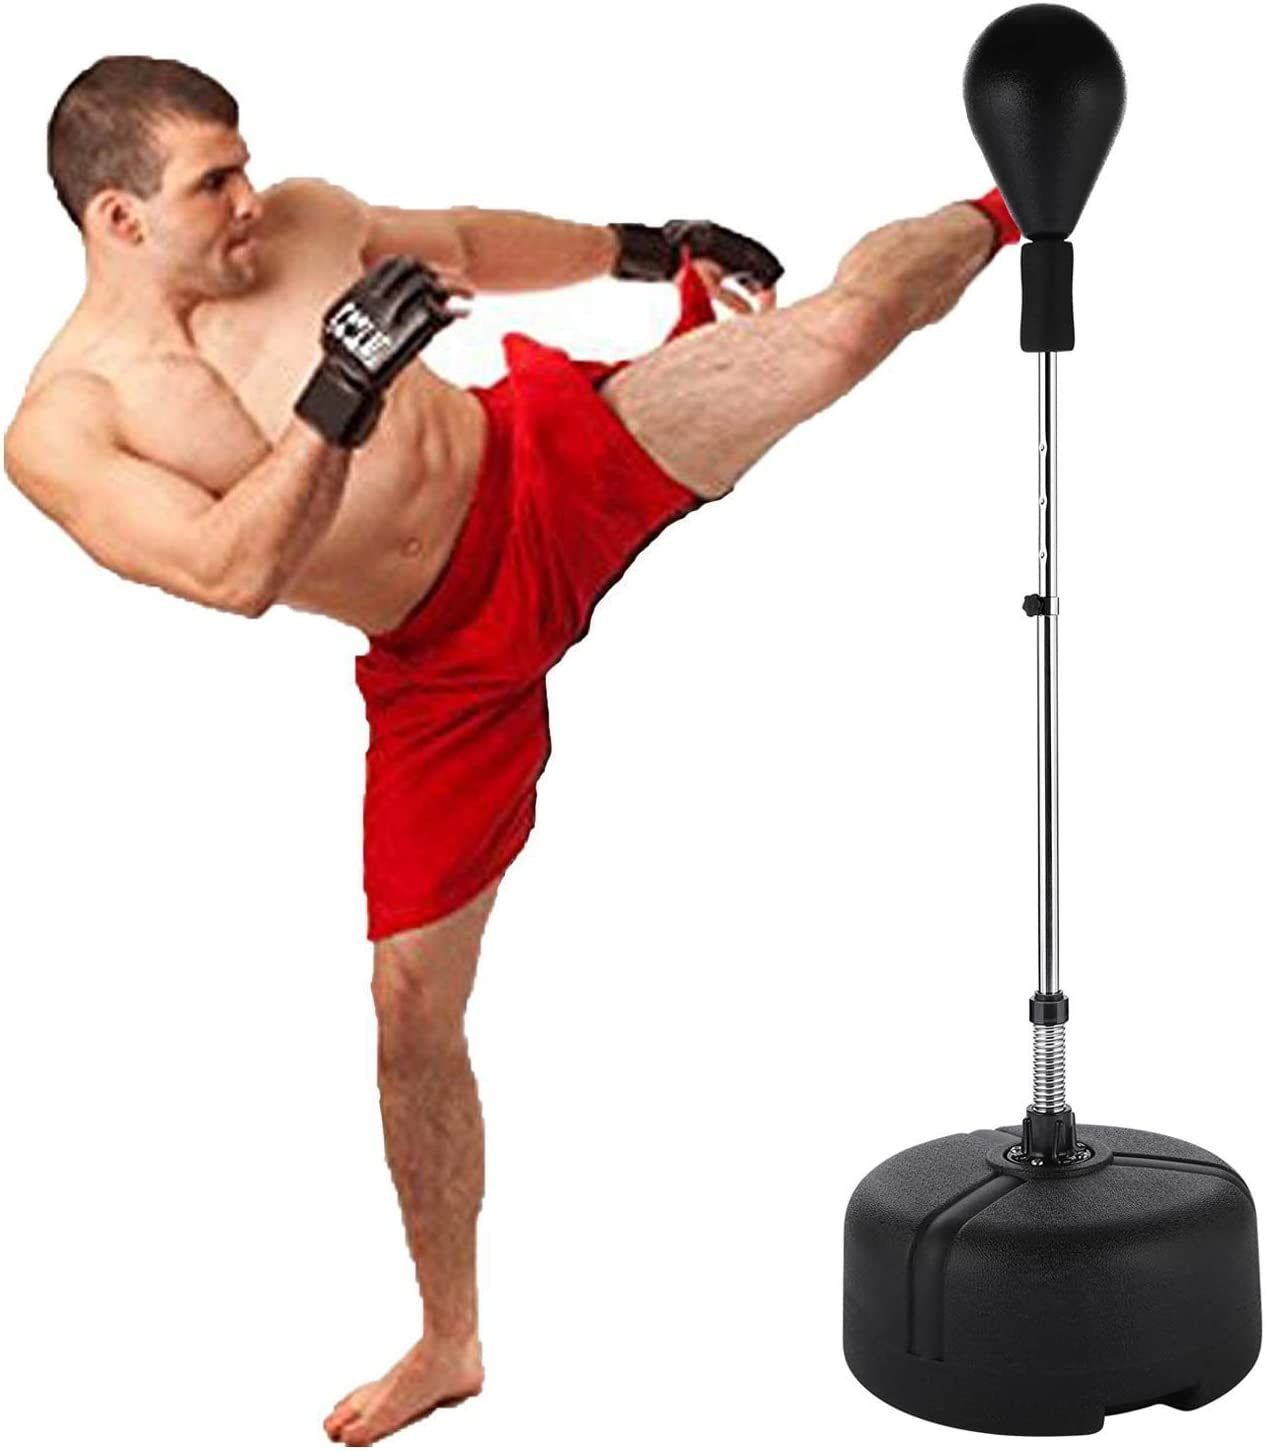 Bestlucky Standing Punching Bag, Adjustable Height 53.5-60.6, Free Standing Punching Bag Stress Release Fitness Trainer US Stock